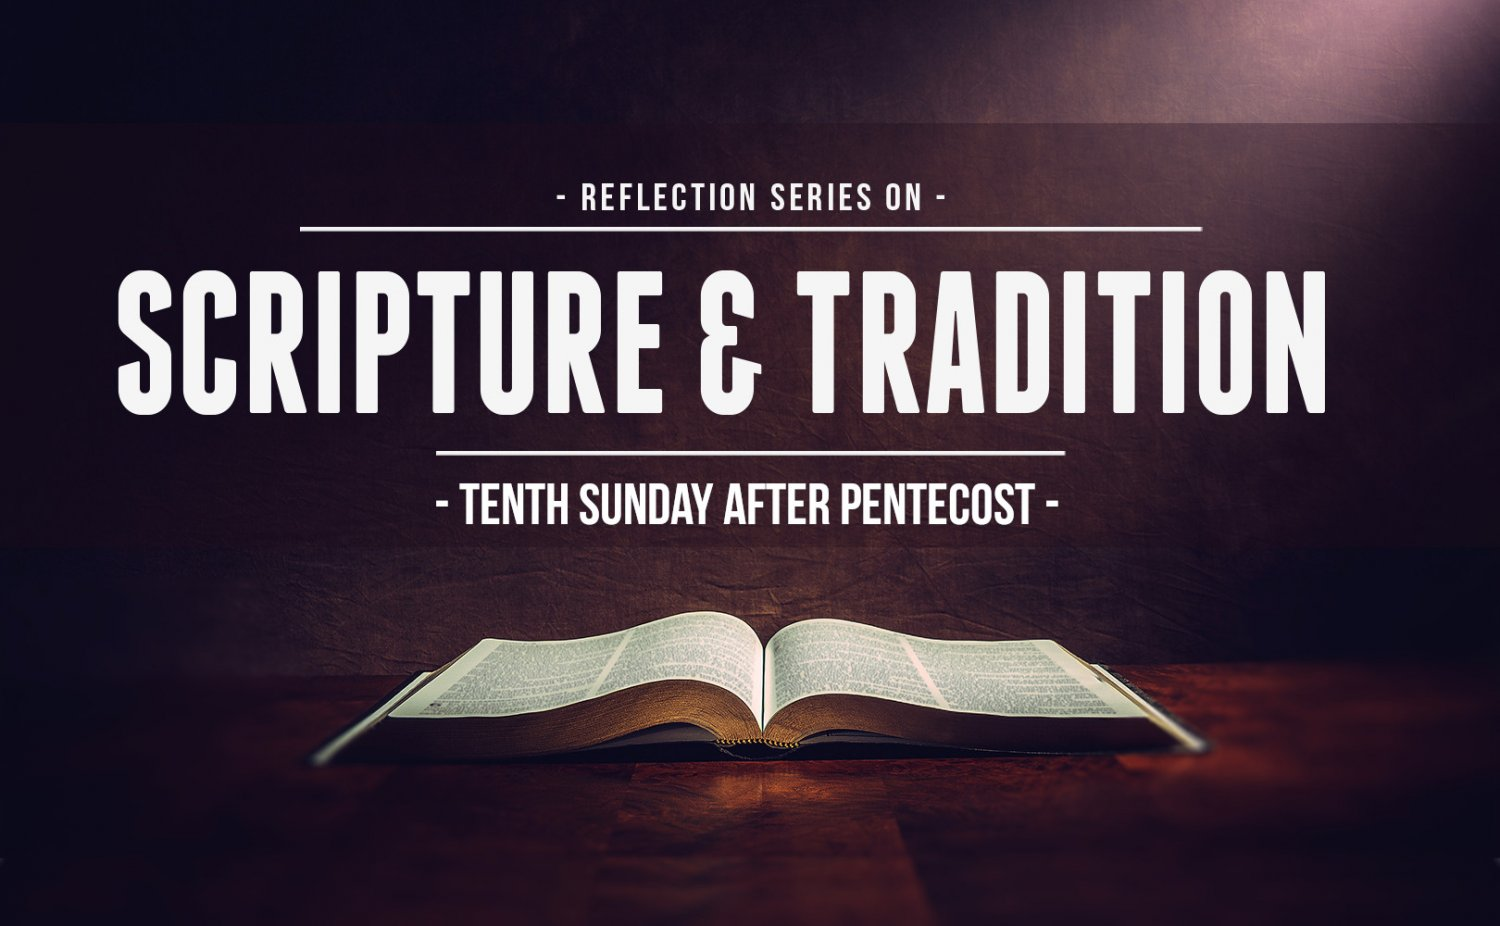 Tenth Sunday